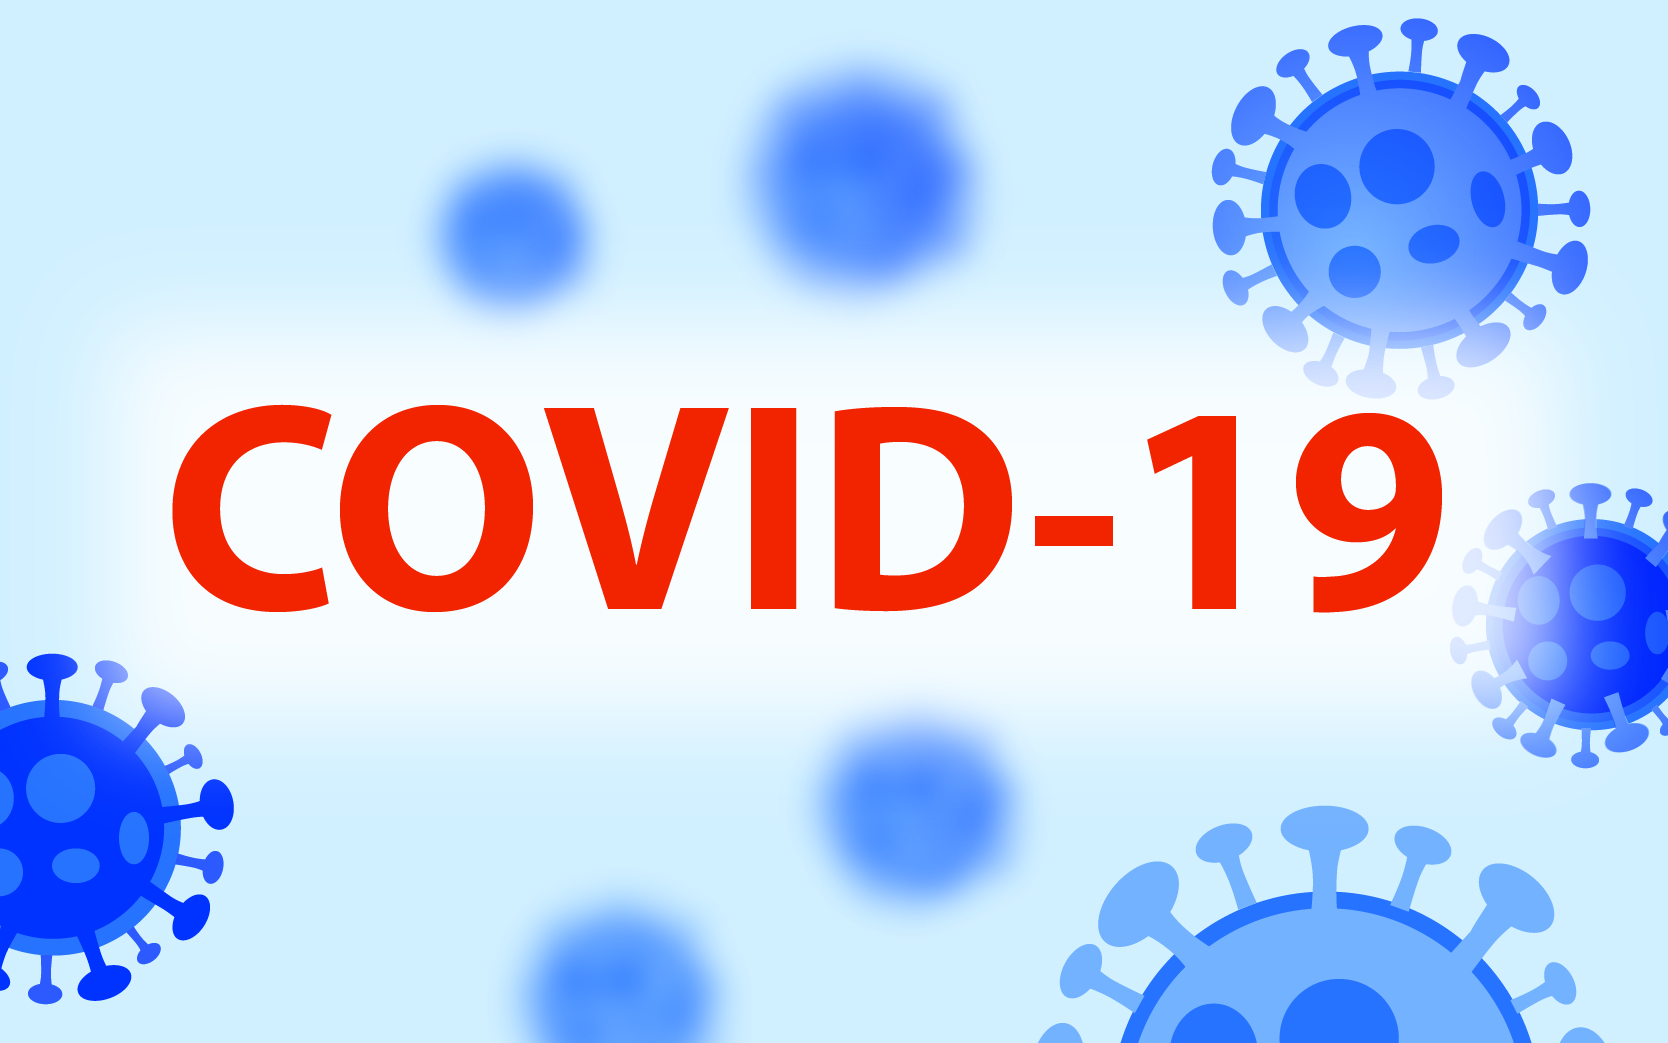 COVID-19 Infections in Africa Drops By 20%